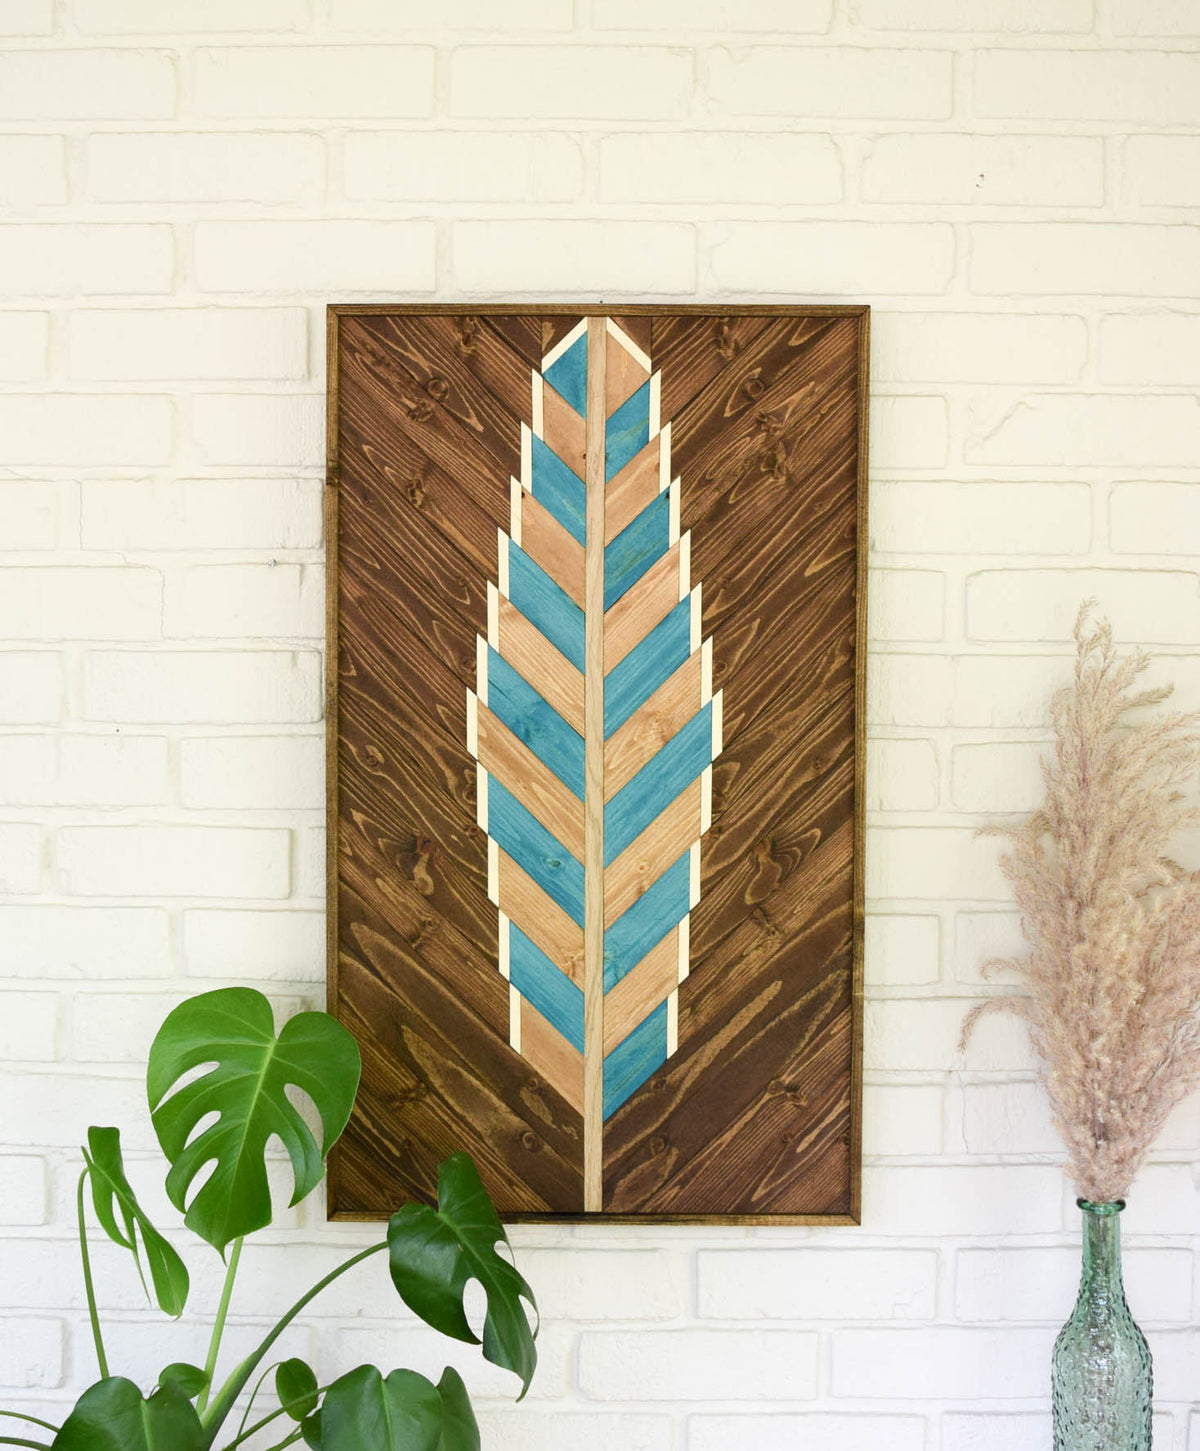 BLUEBIRD Wood Wall Art - Wooden Wall Art - Geometric Wood Art - Wooden Wall Art Hanging - Modern Wood Art - Boho Wood Art - Wood Wall Decor